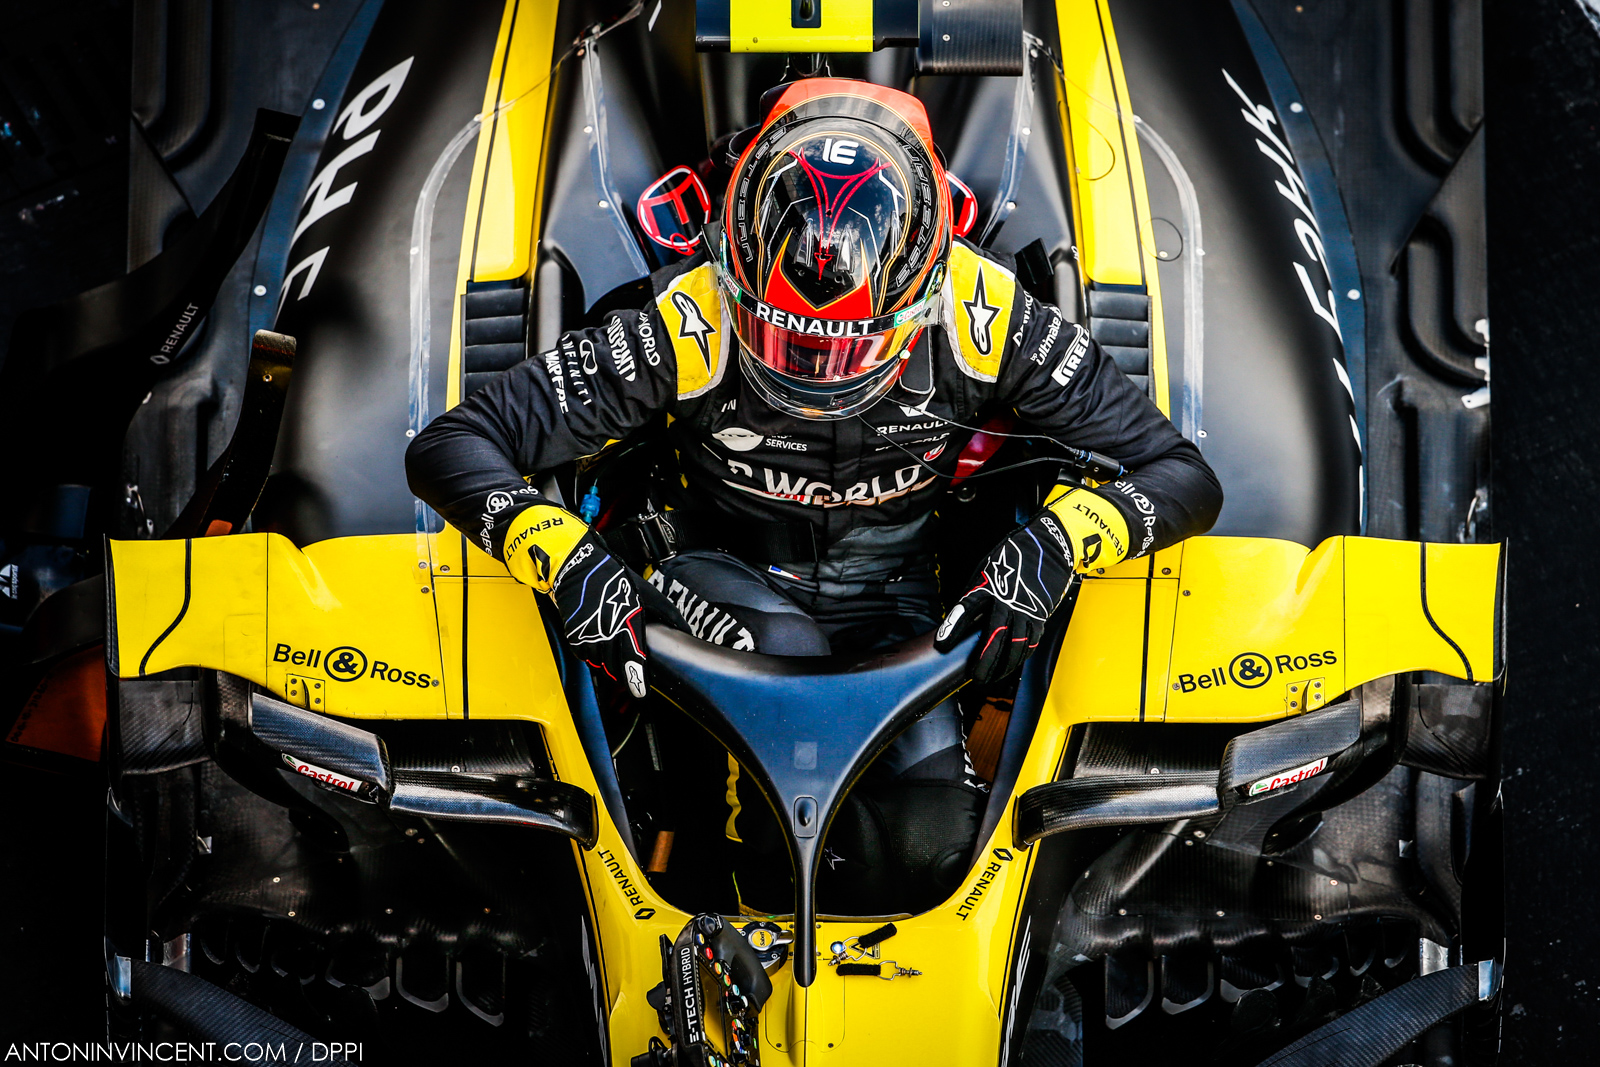 OCON Esteban (fra), Renault F1 Team RS20, portrait during the Formula 1 VTB Russian Grand Prix 2020, from September 25 to 27, 2020 on the Sochi Autodrom, in Sochi, Russia - Photo Antonin Vincent / DPPI